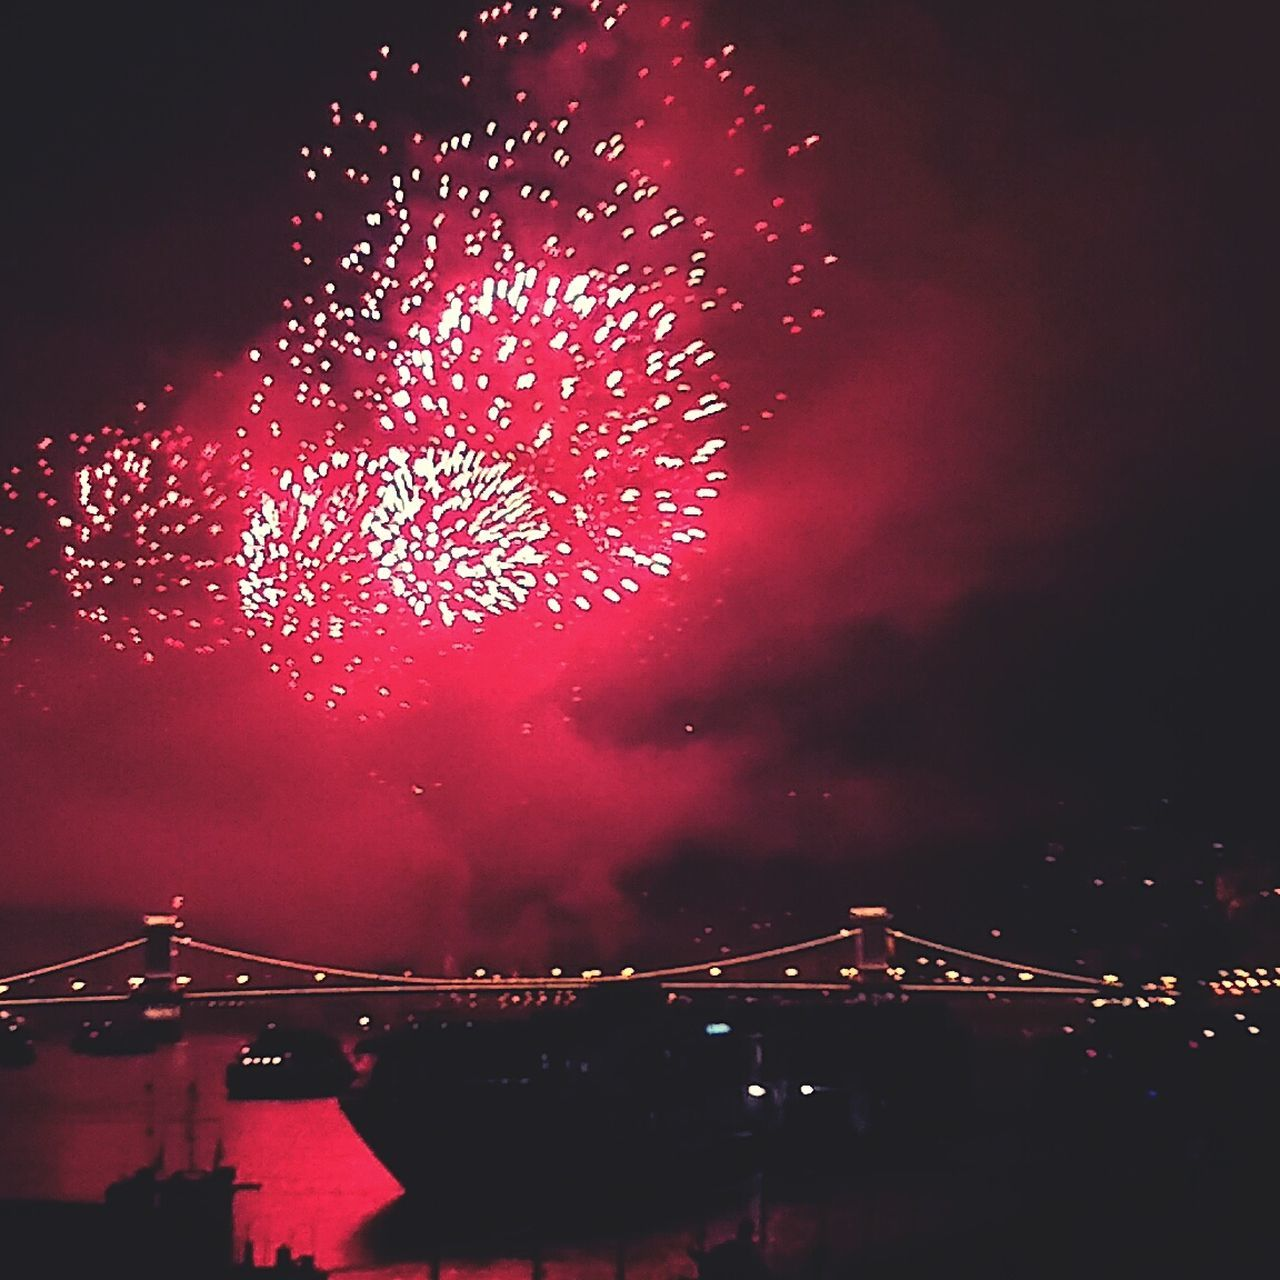 night, arts culture and entertainment, illuminated, firework display, celebration, firework - man made object, event, exploding, glowing, sky, outdoors, low angle view, red, long exposure, firework, no people, built structure